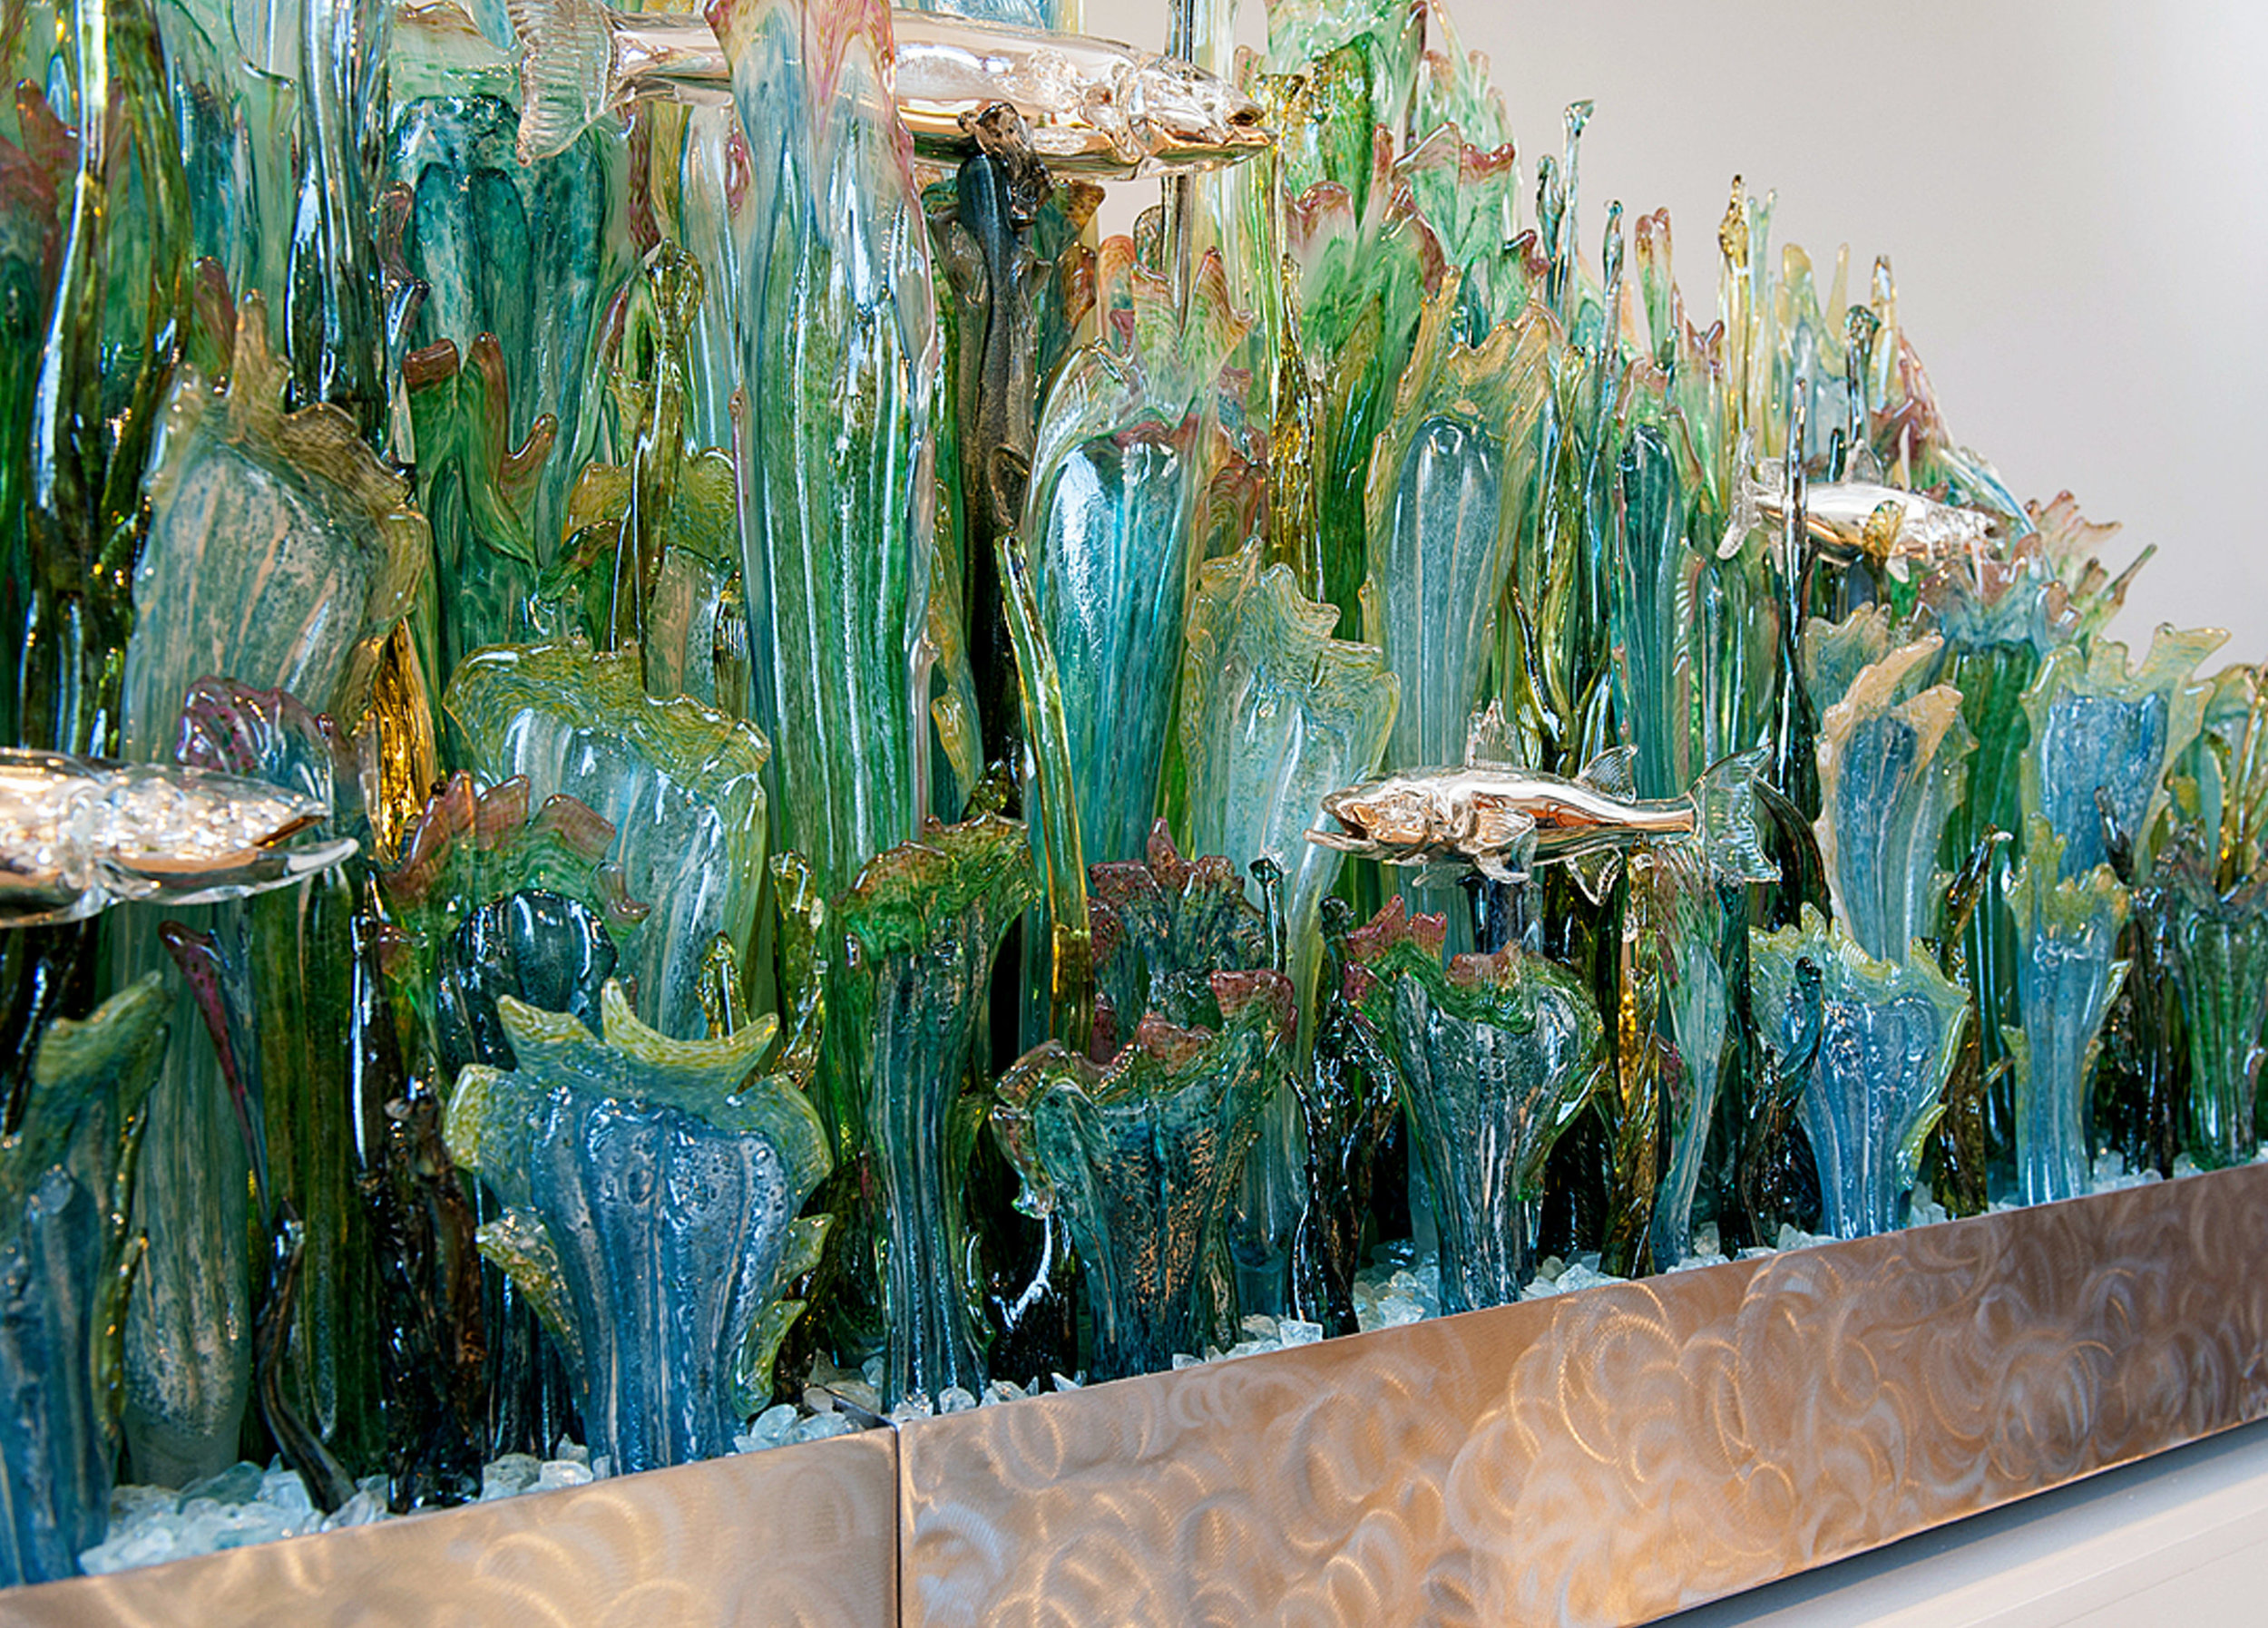 Detail - Kelp Forest with Silver Fish.